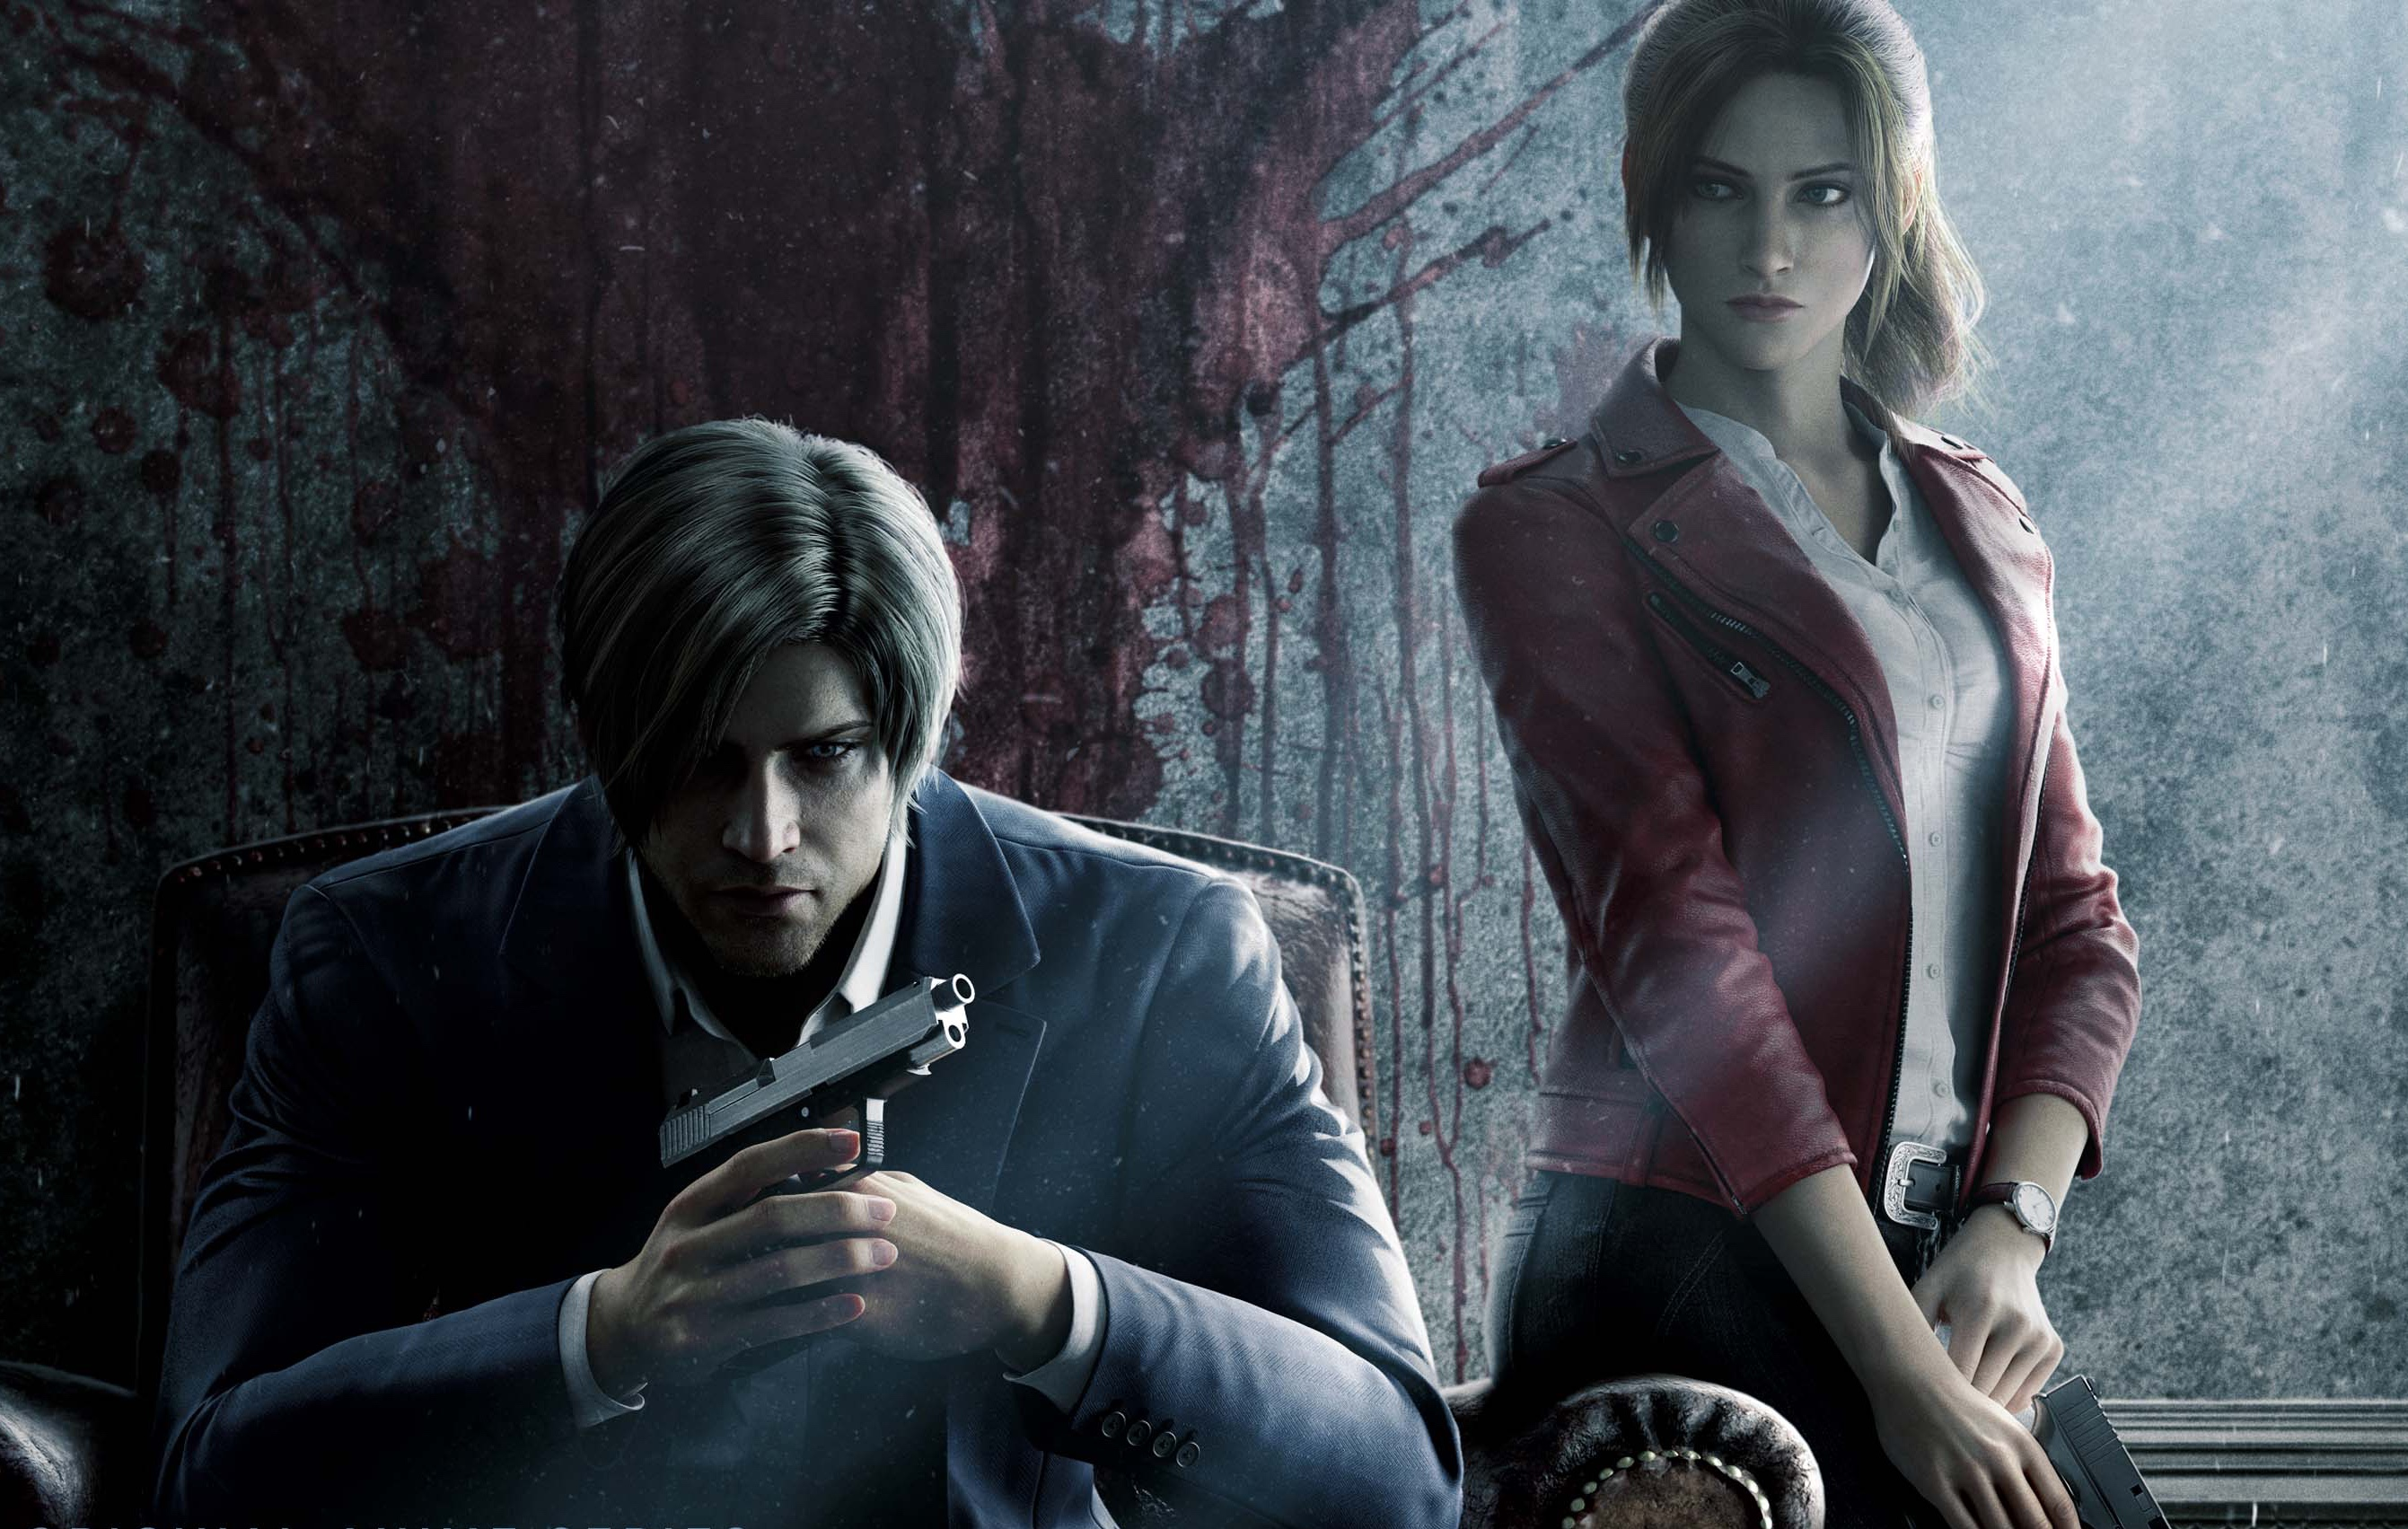 Artwork of Leon S. Kennedy and Claire Redfield from Resident Evil: Infinite Darkness